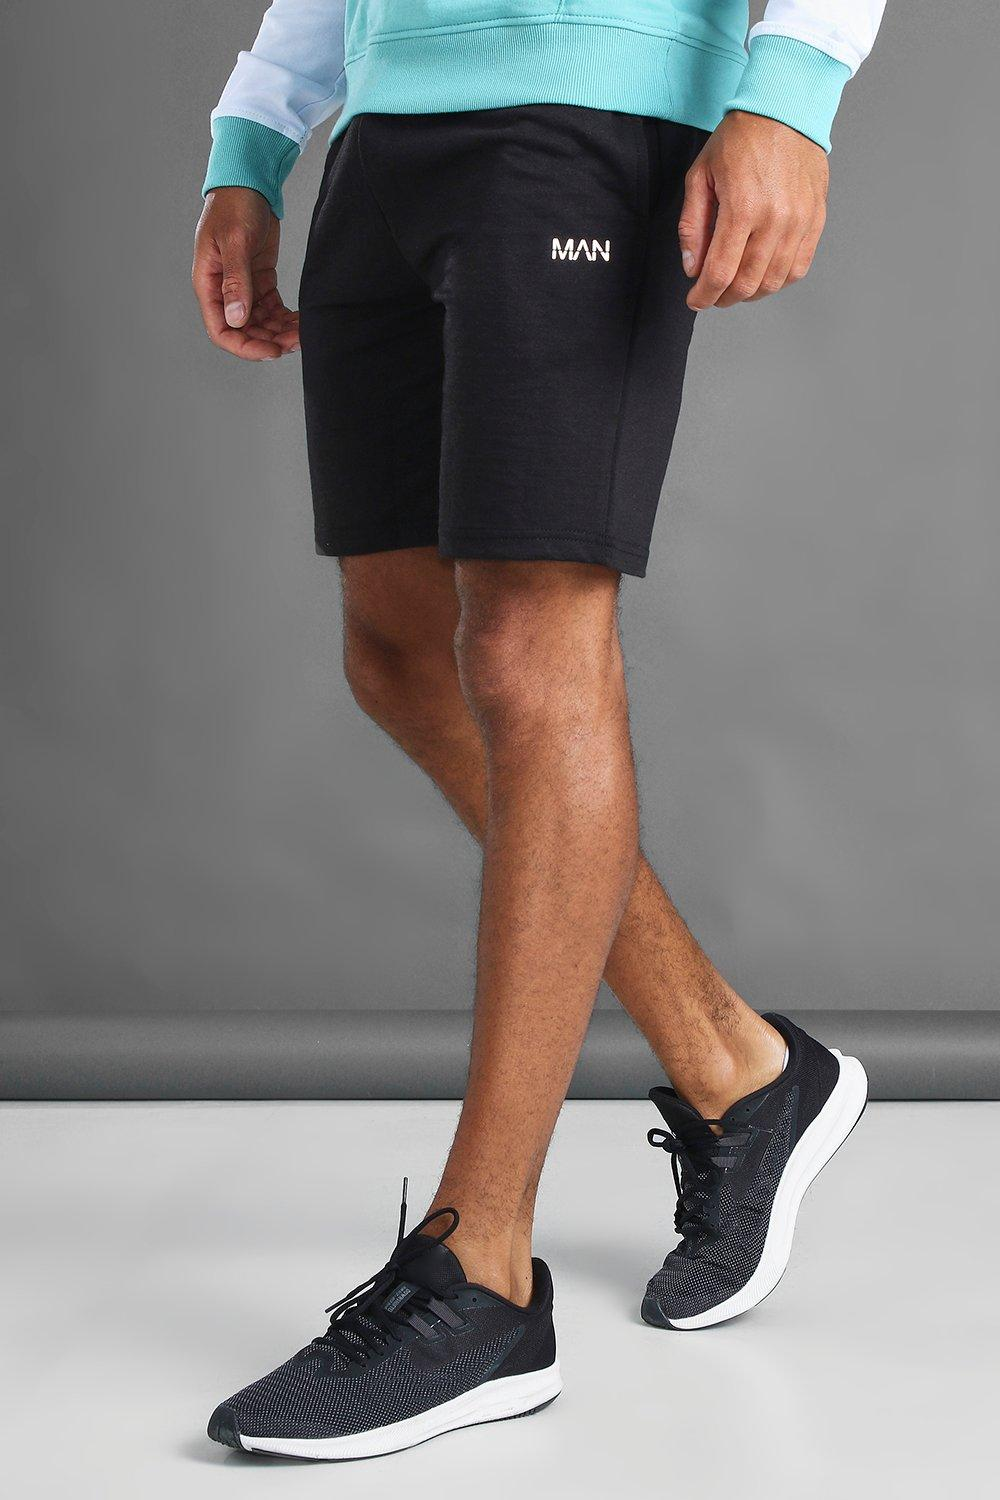 mens man mid length shorts with contrast drawcords - black